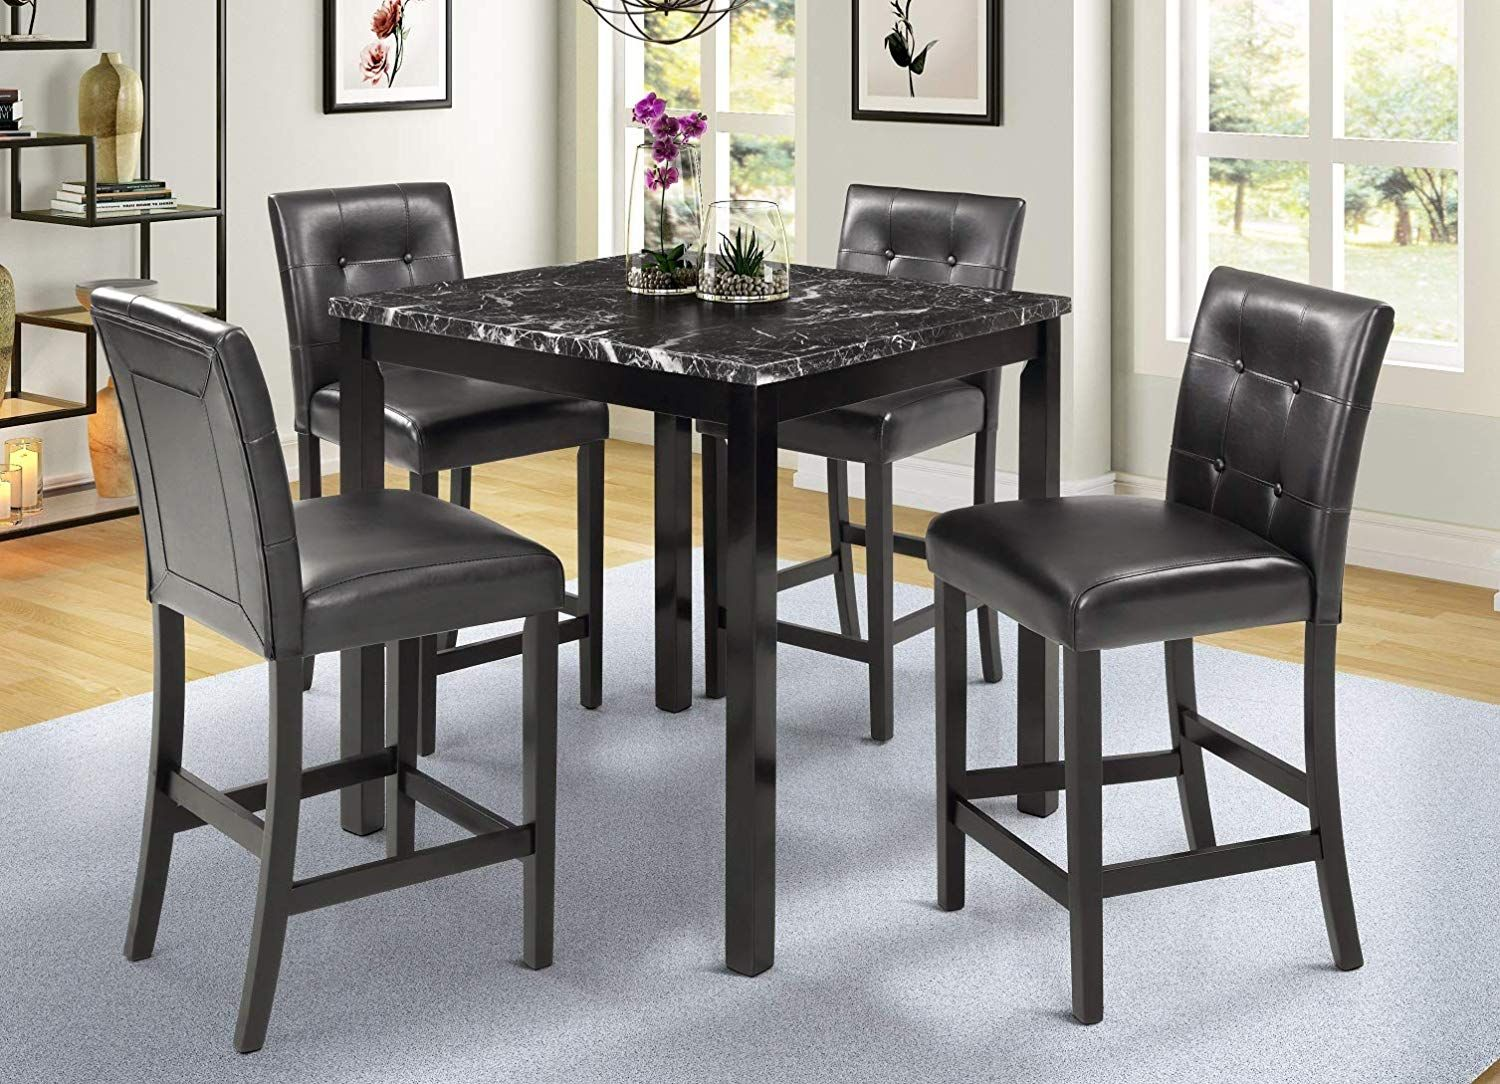 5 Piece Counter Height Dining Set Kitchen Table Furniture Set With